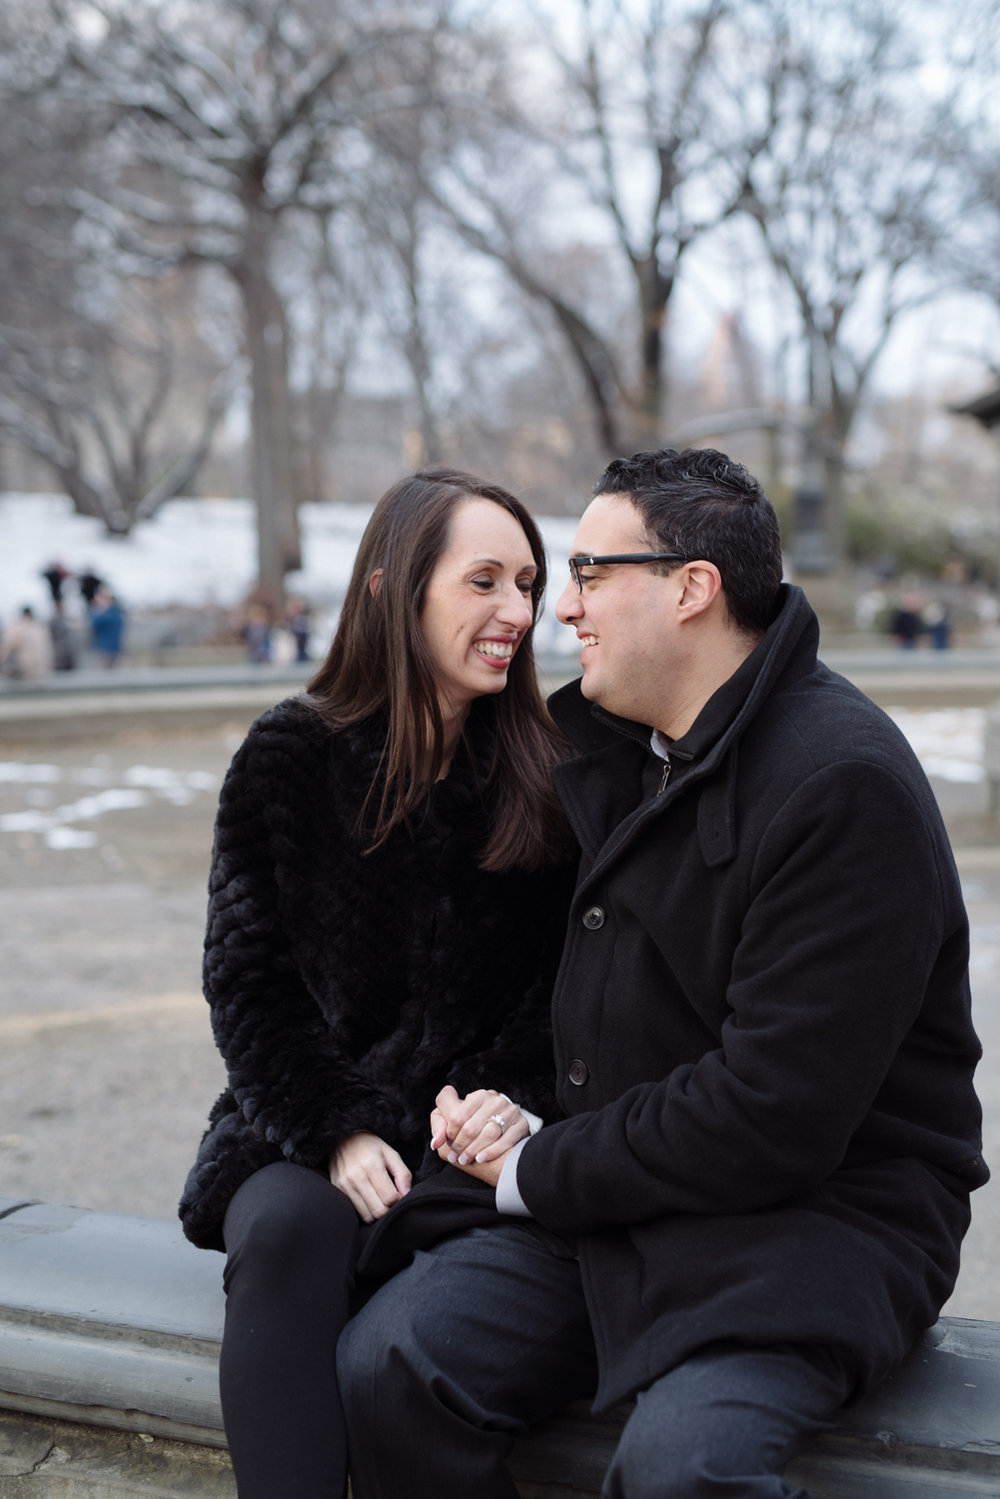 Carmelo+Meg- Central Park Winter Engagement Session- New York City- Olivia Christina Photography-54.JPG